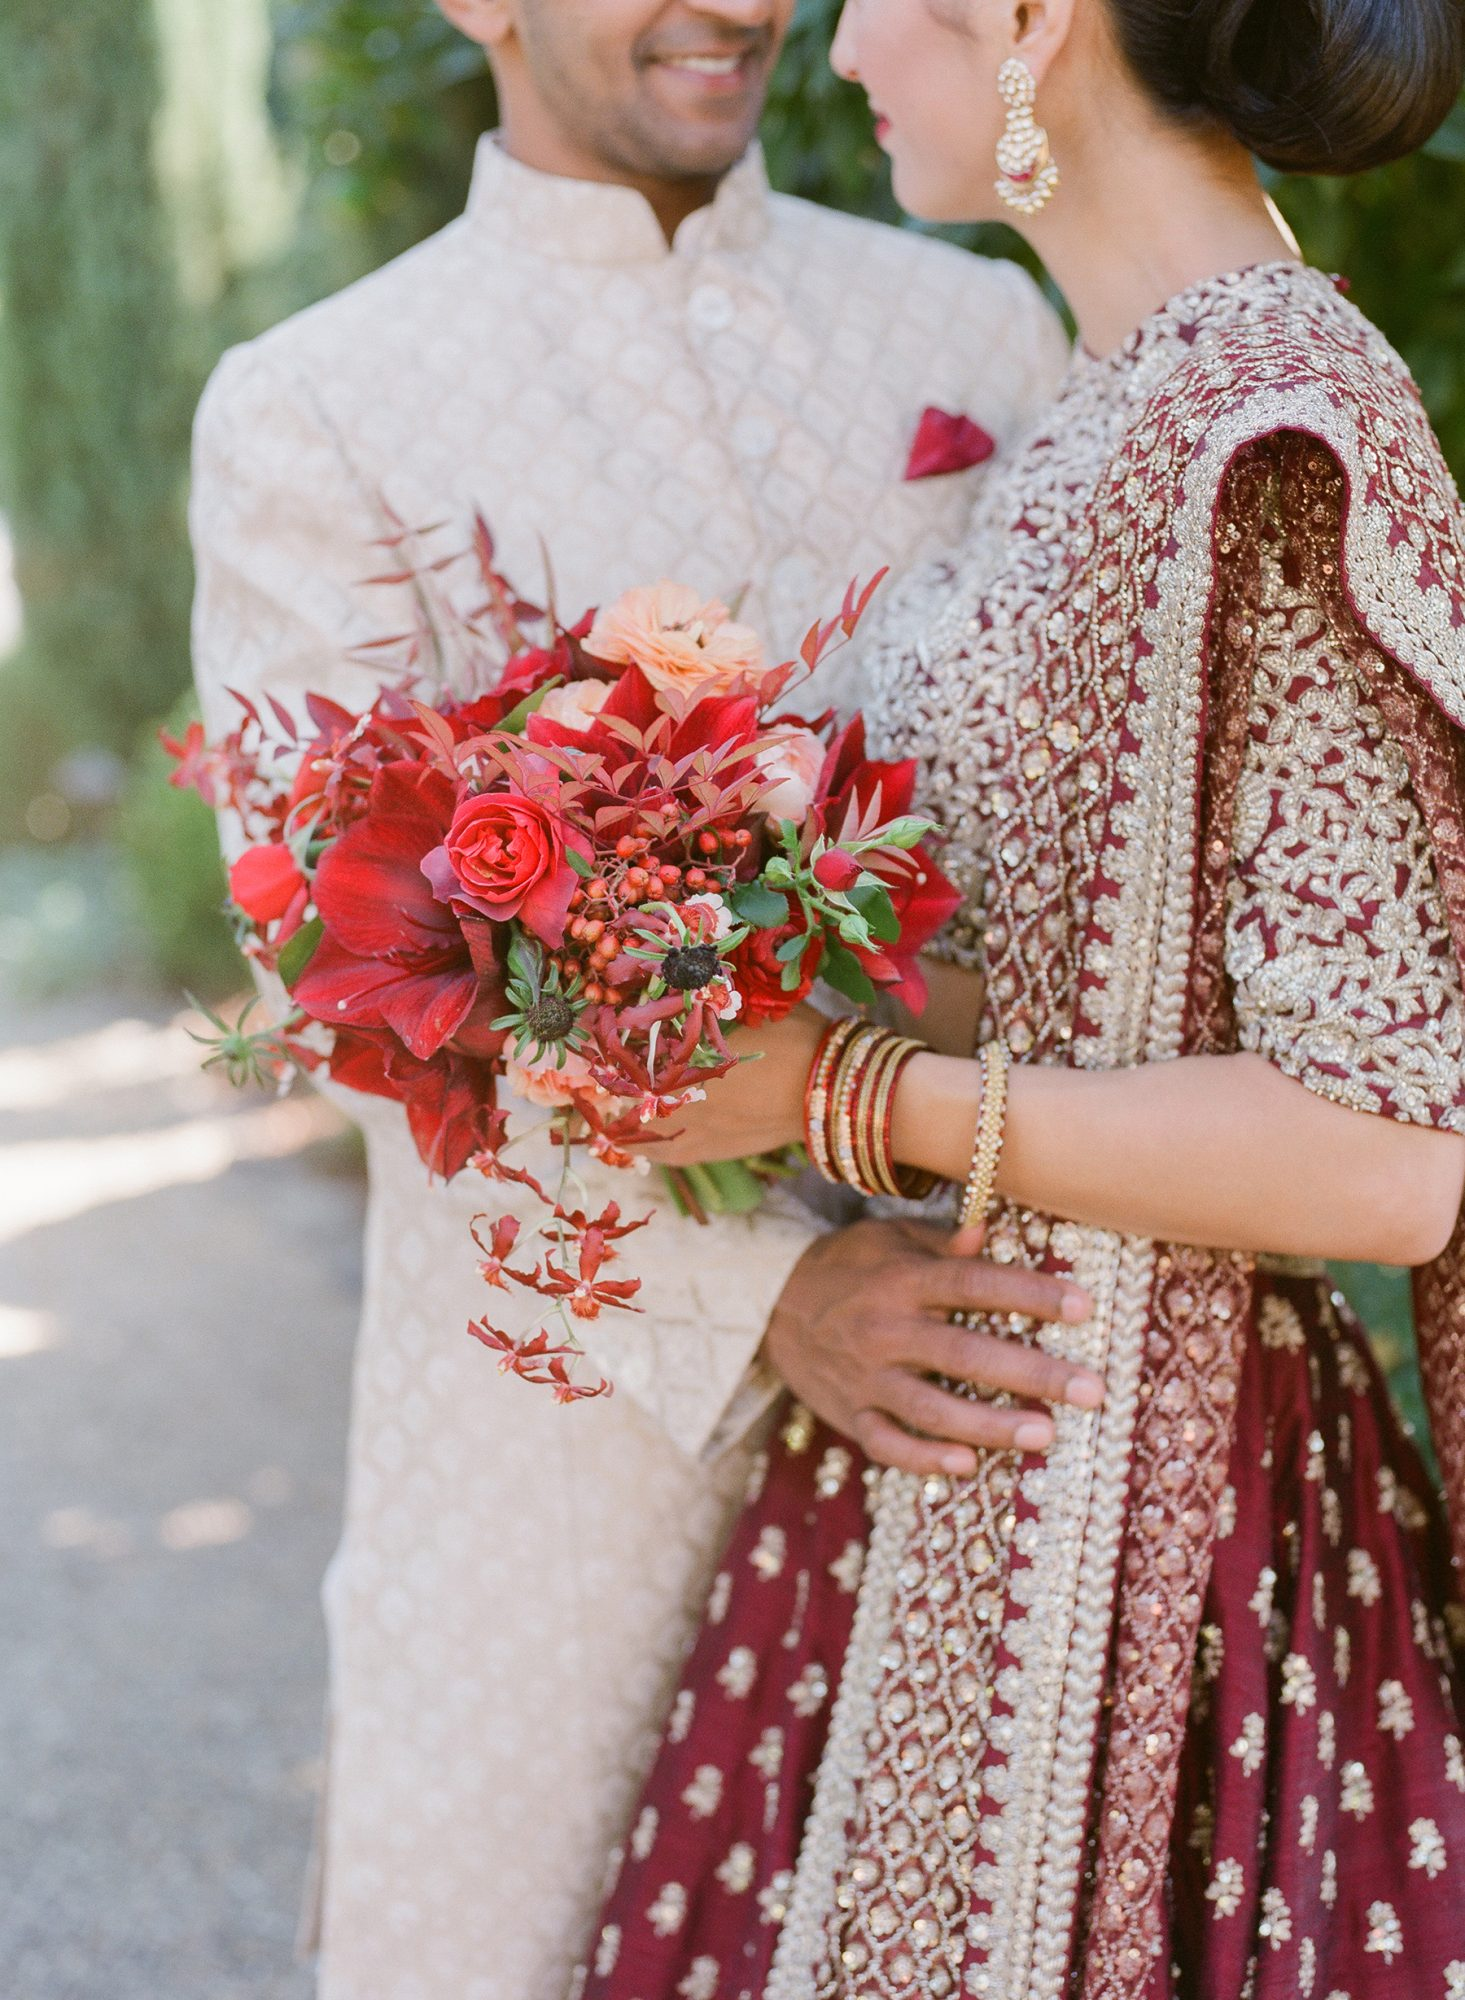 jenna alok wedding wine country california red bouquet